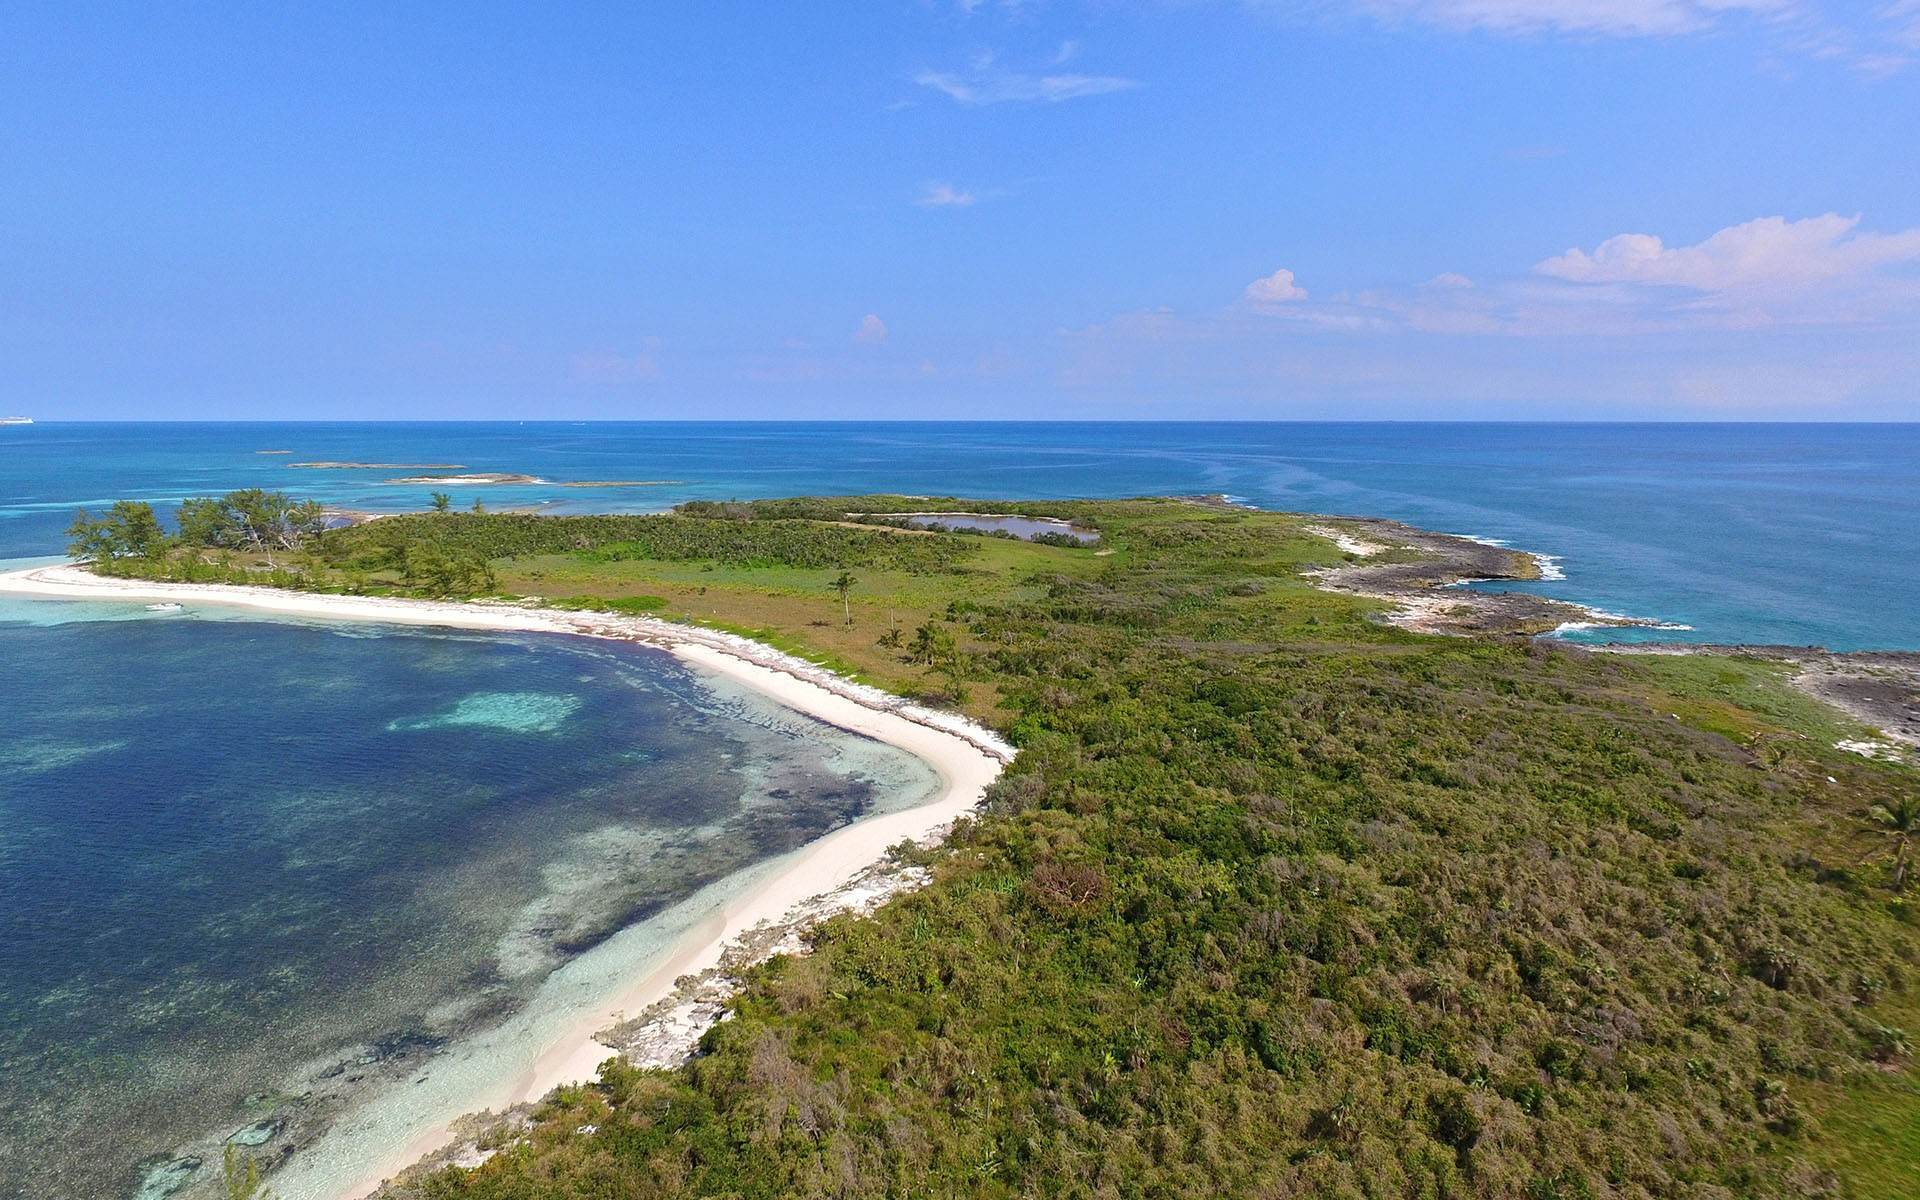 Private Islands for Sale at Petite Cay, Private Island, Berry Islands - MLS #29563 Great Harbour Cay, Berry Islands, Bahamas